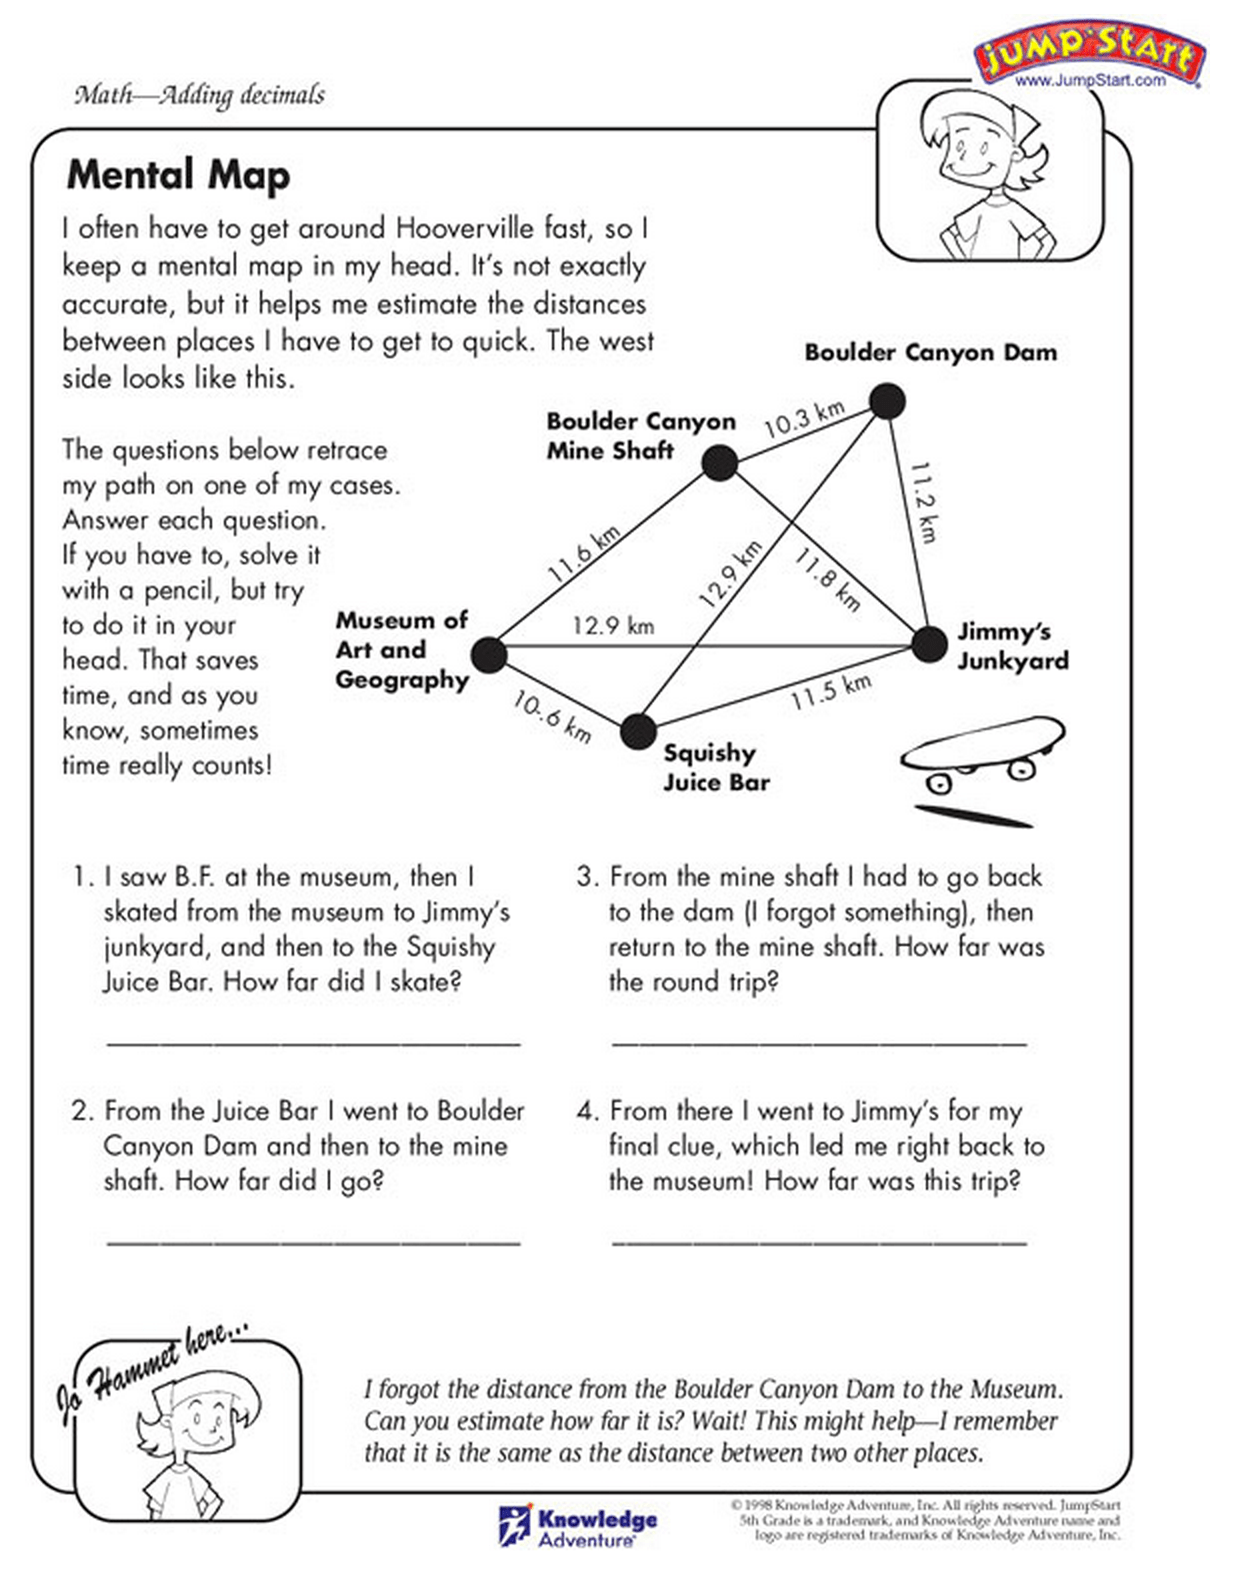 The Decimal Math Practice Sheet Read The Story To Solve The Math Problems